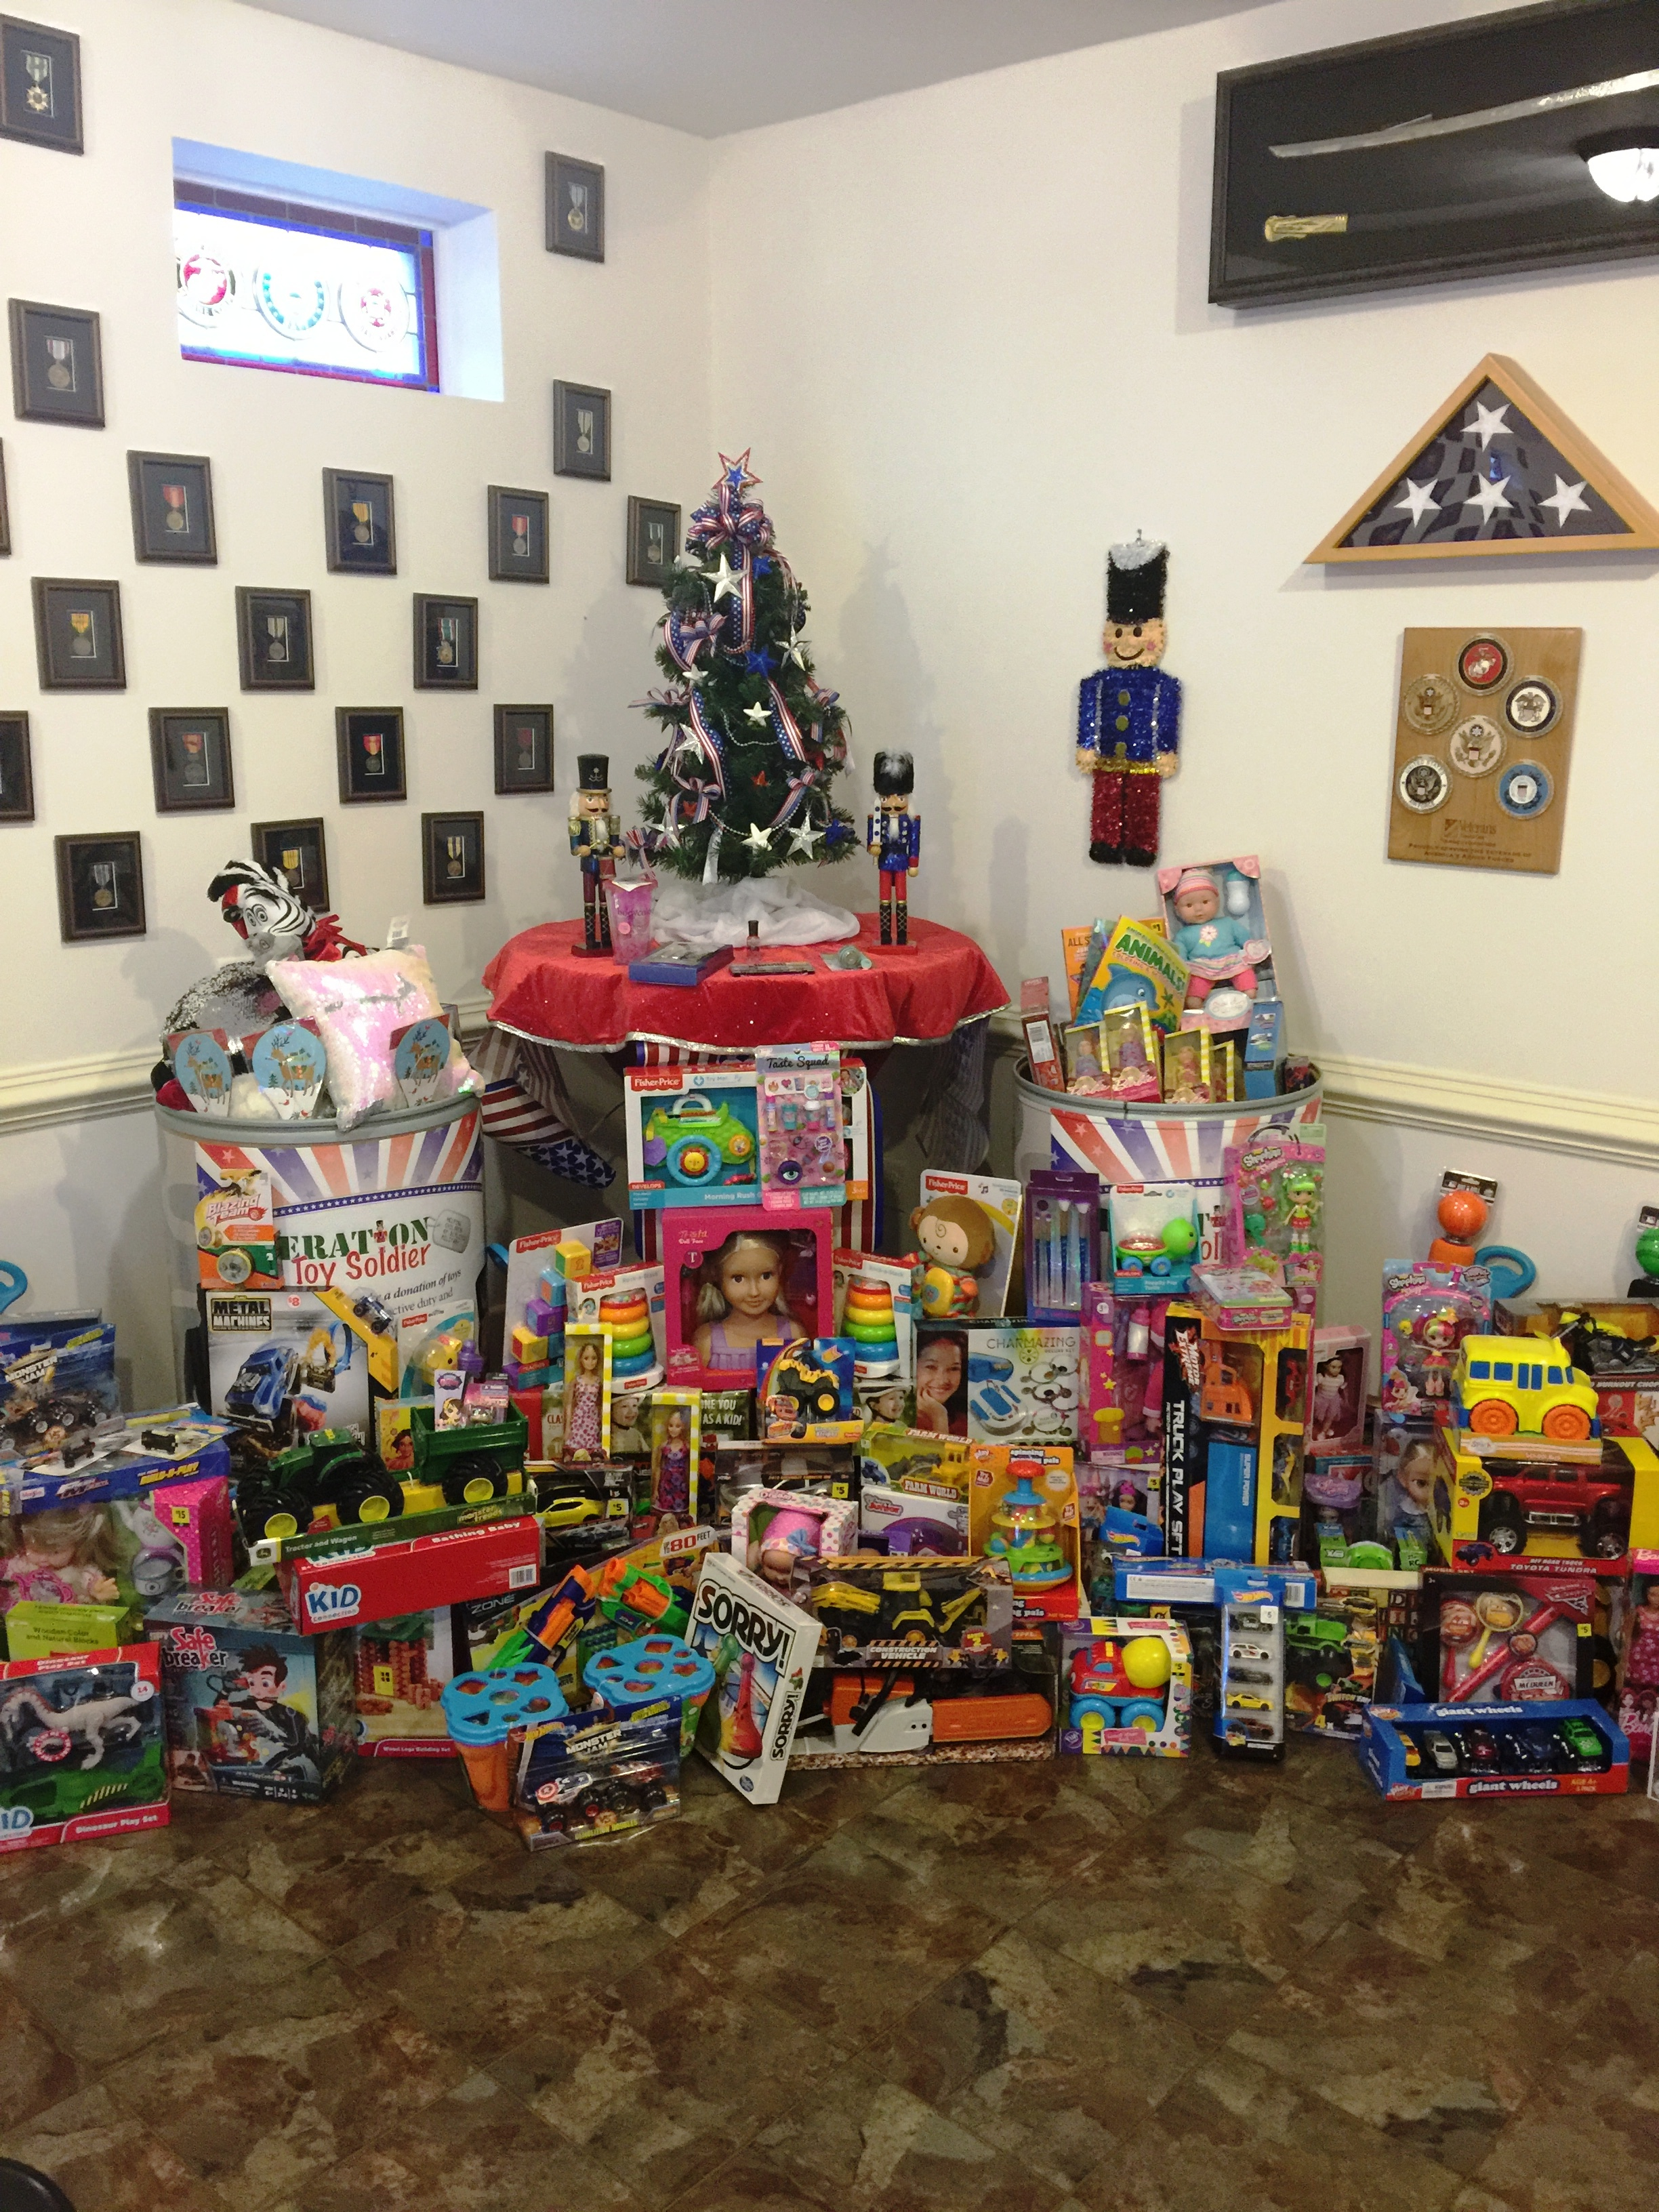 Twiford Funeral Homes donated toys overflowing the barrel